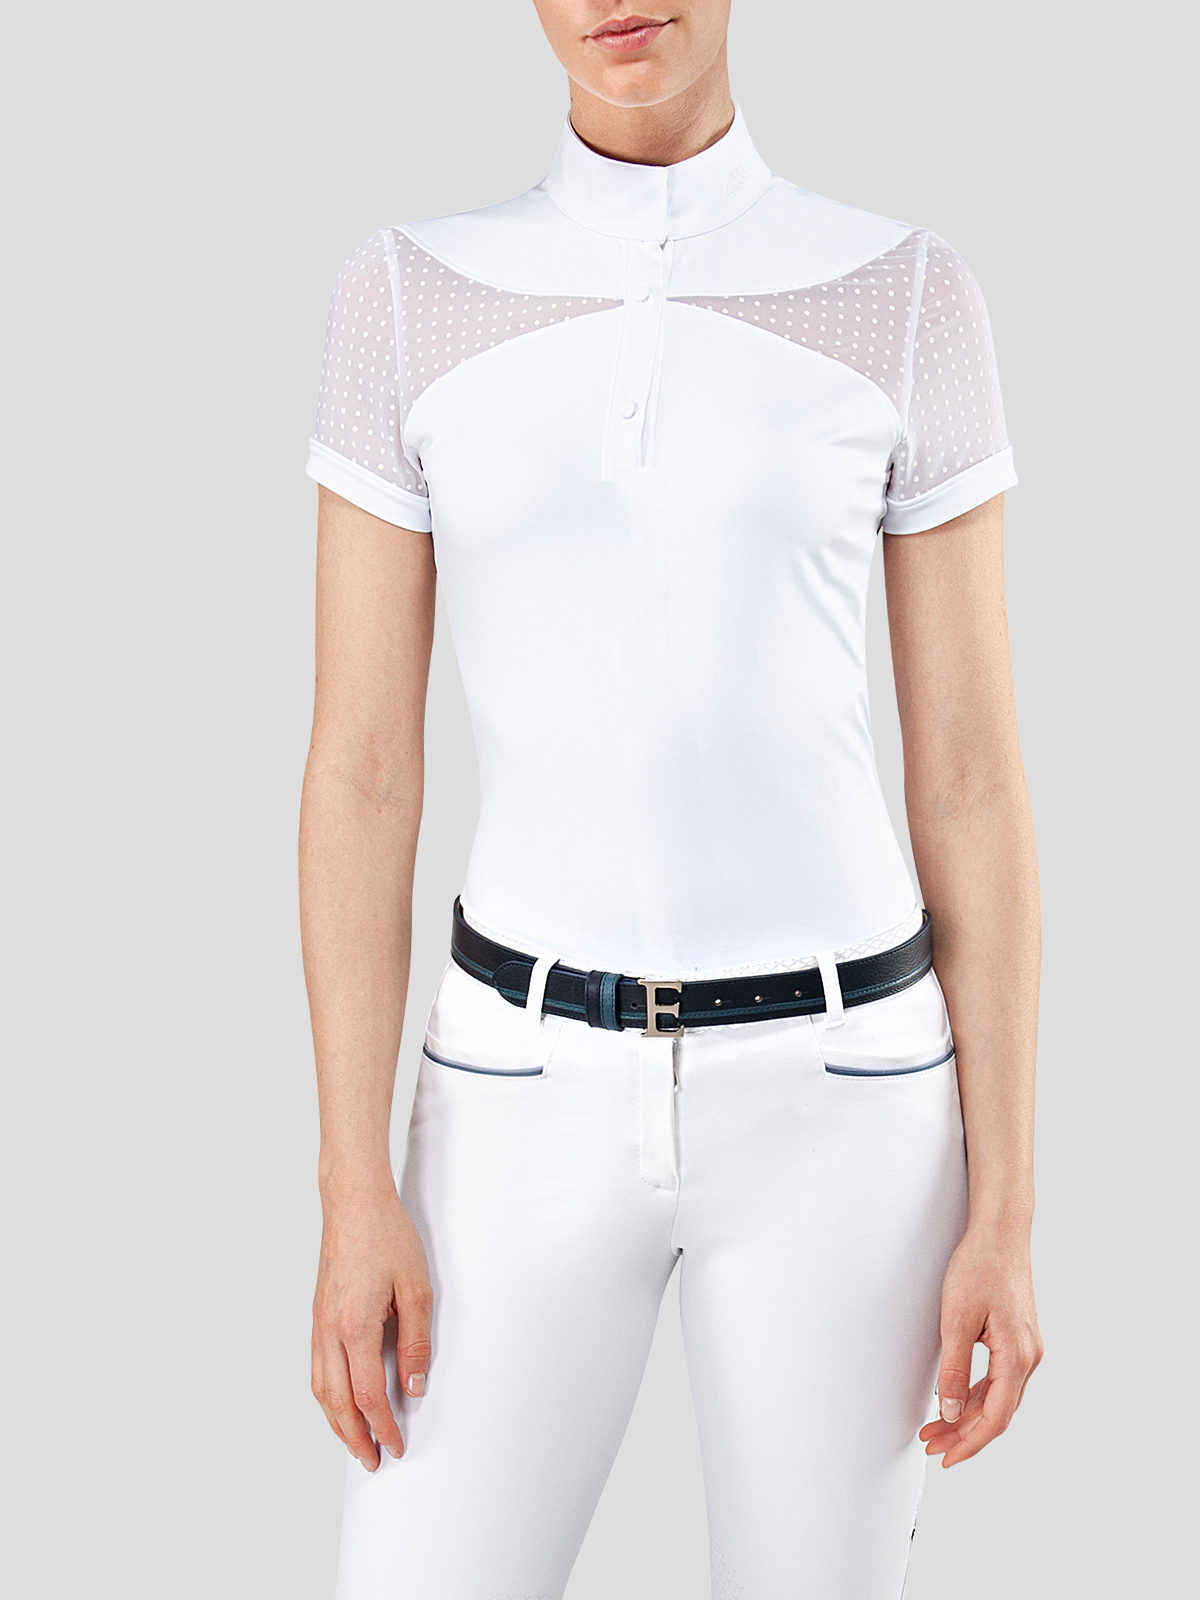 EDEN WOMEN'S SHOW SHIRT WITH DOTS TRANSPARENCY 1